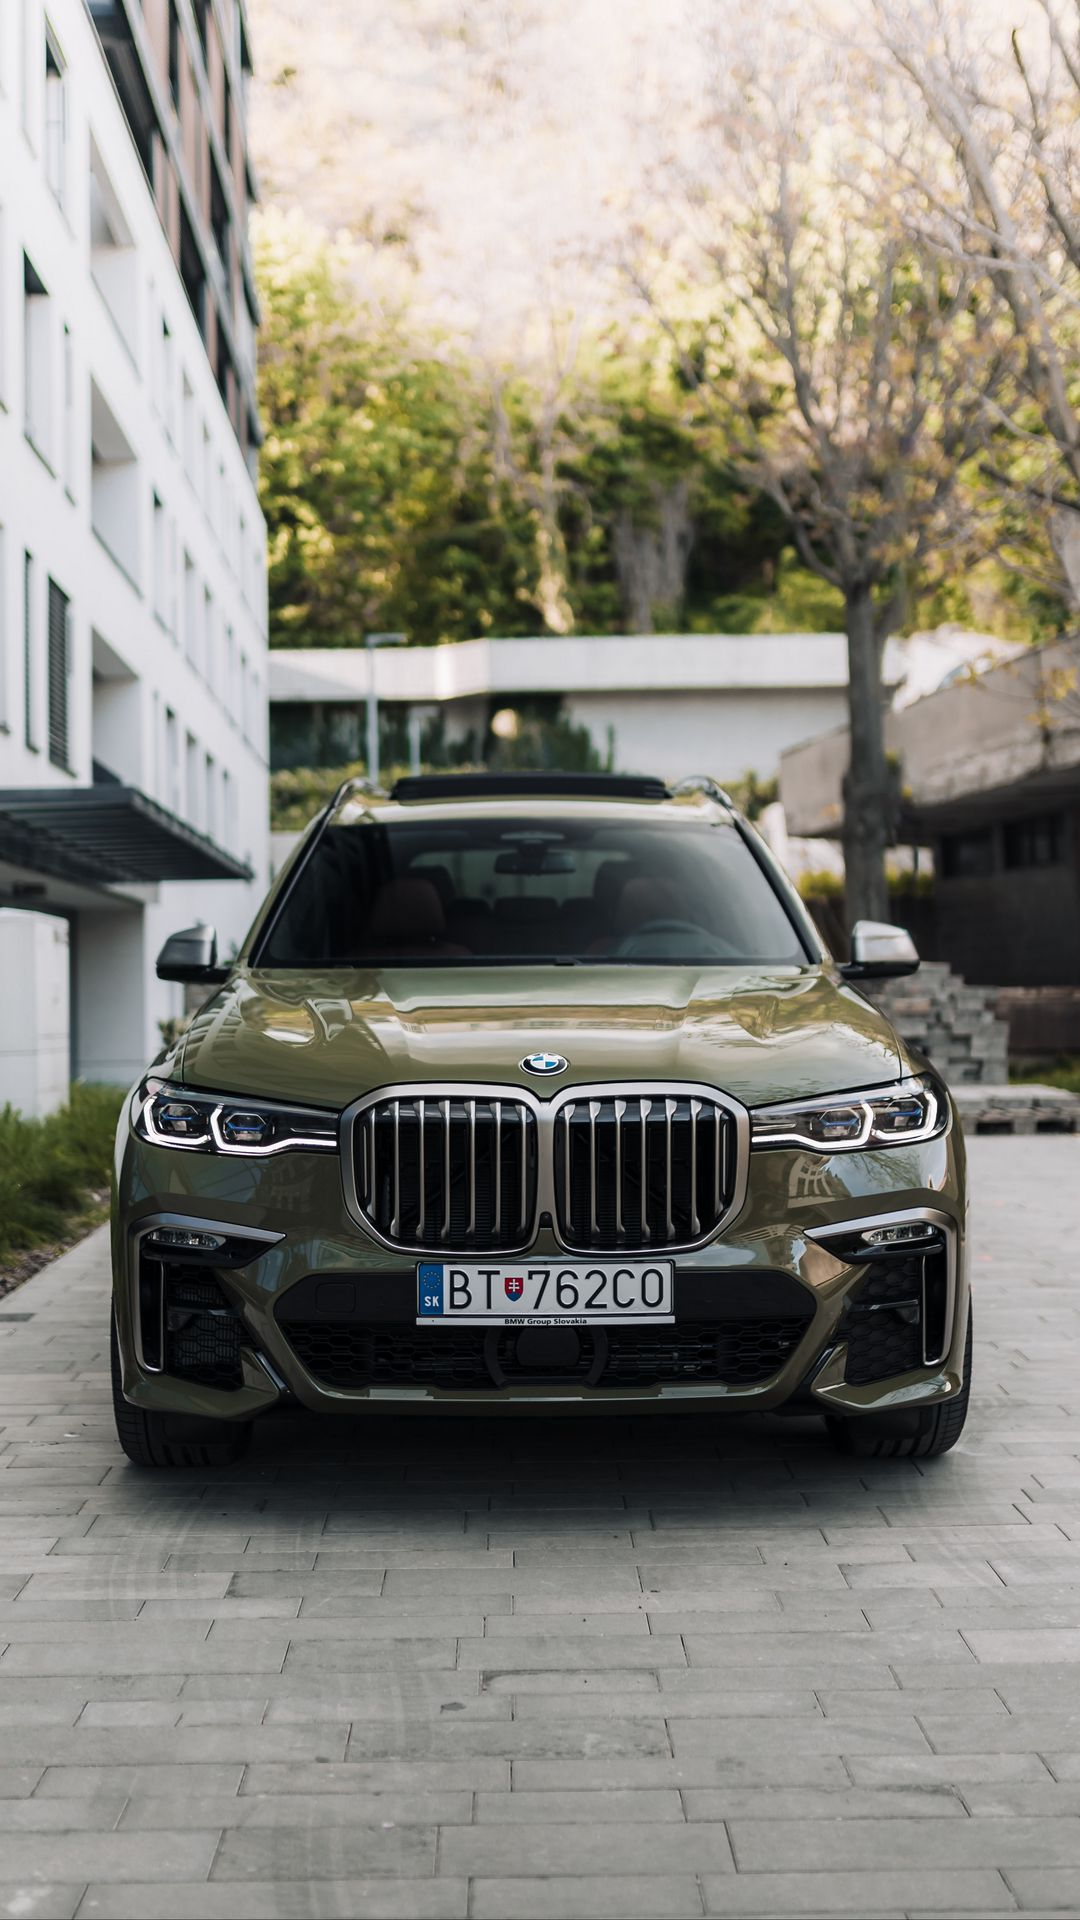 BMW X3 M40i Suv series Wallpapers Free Download